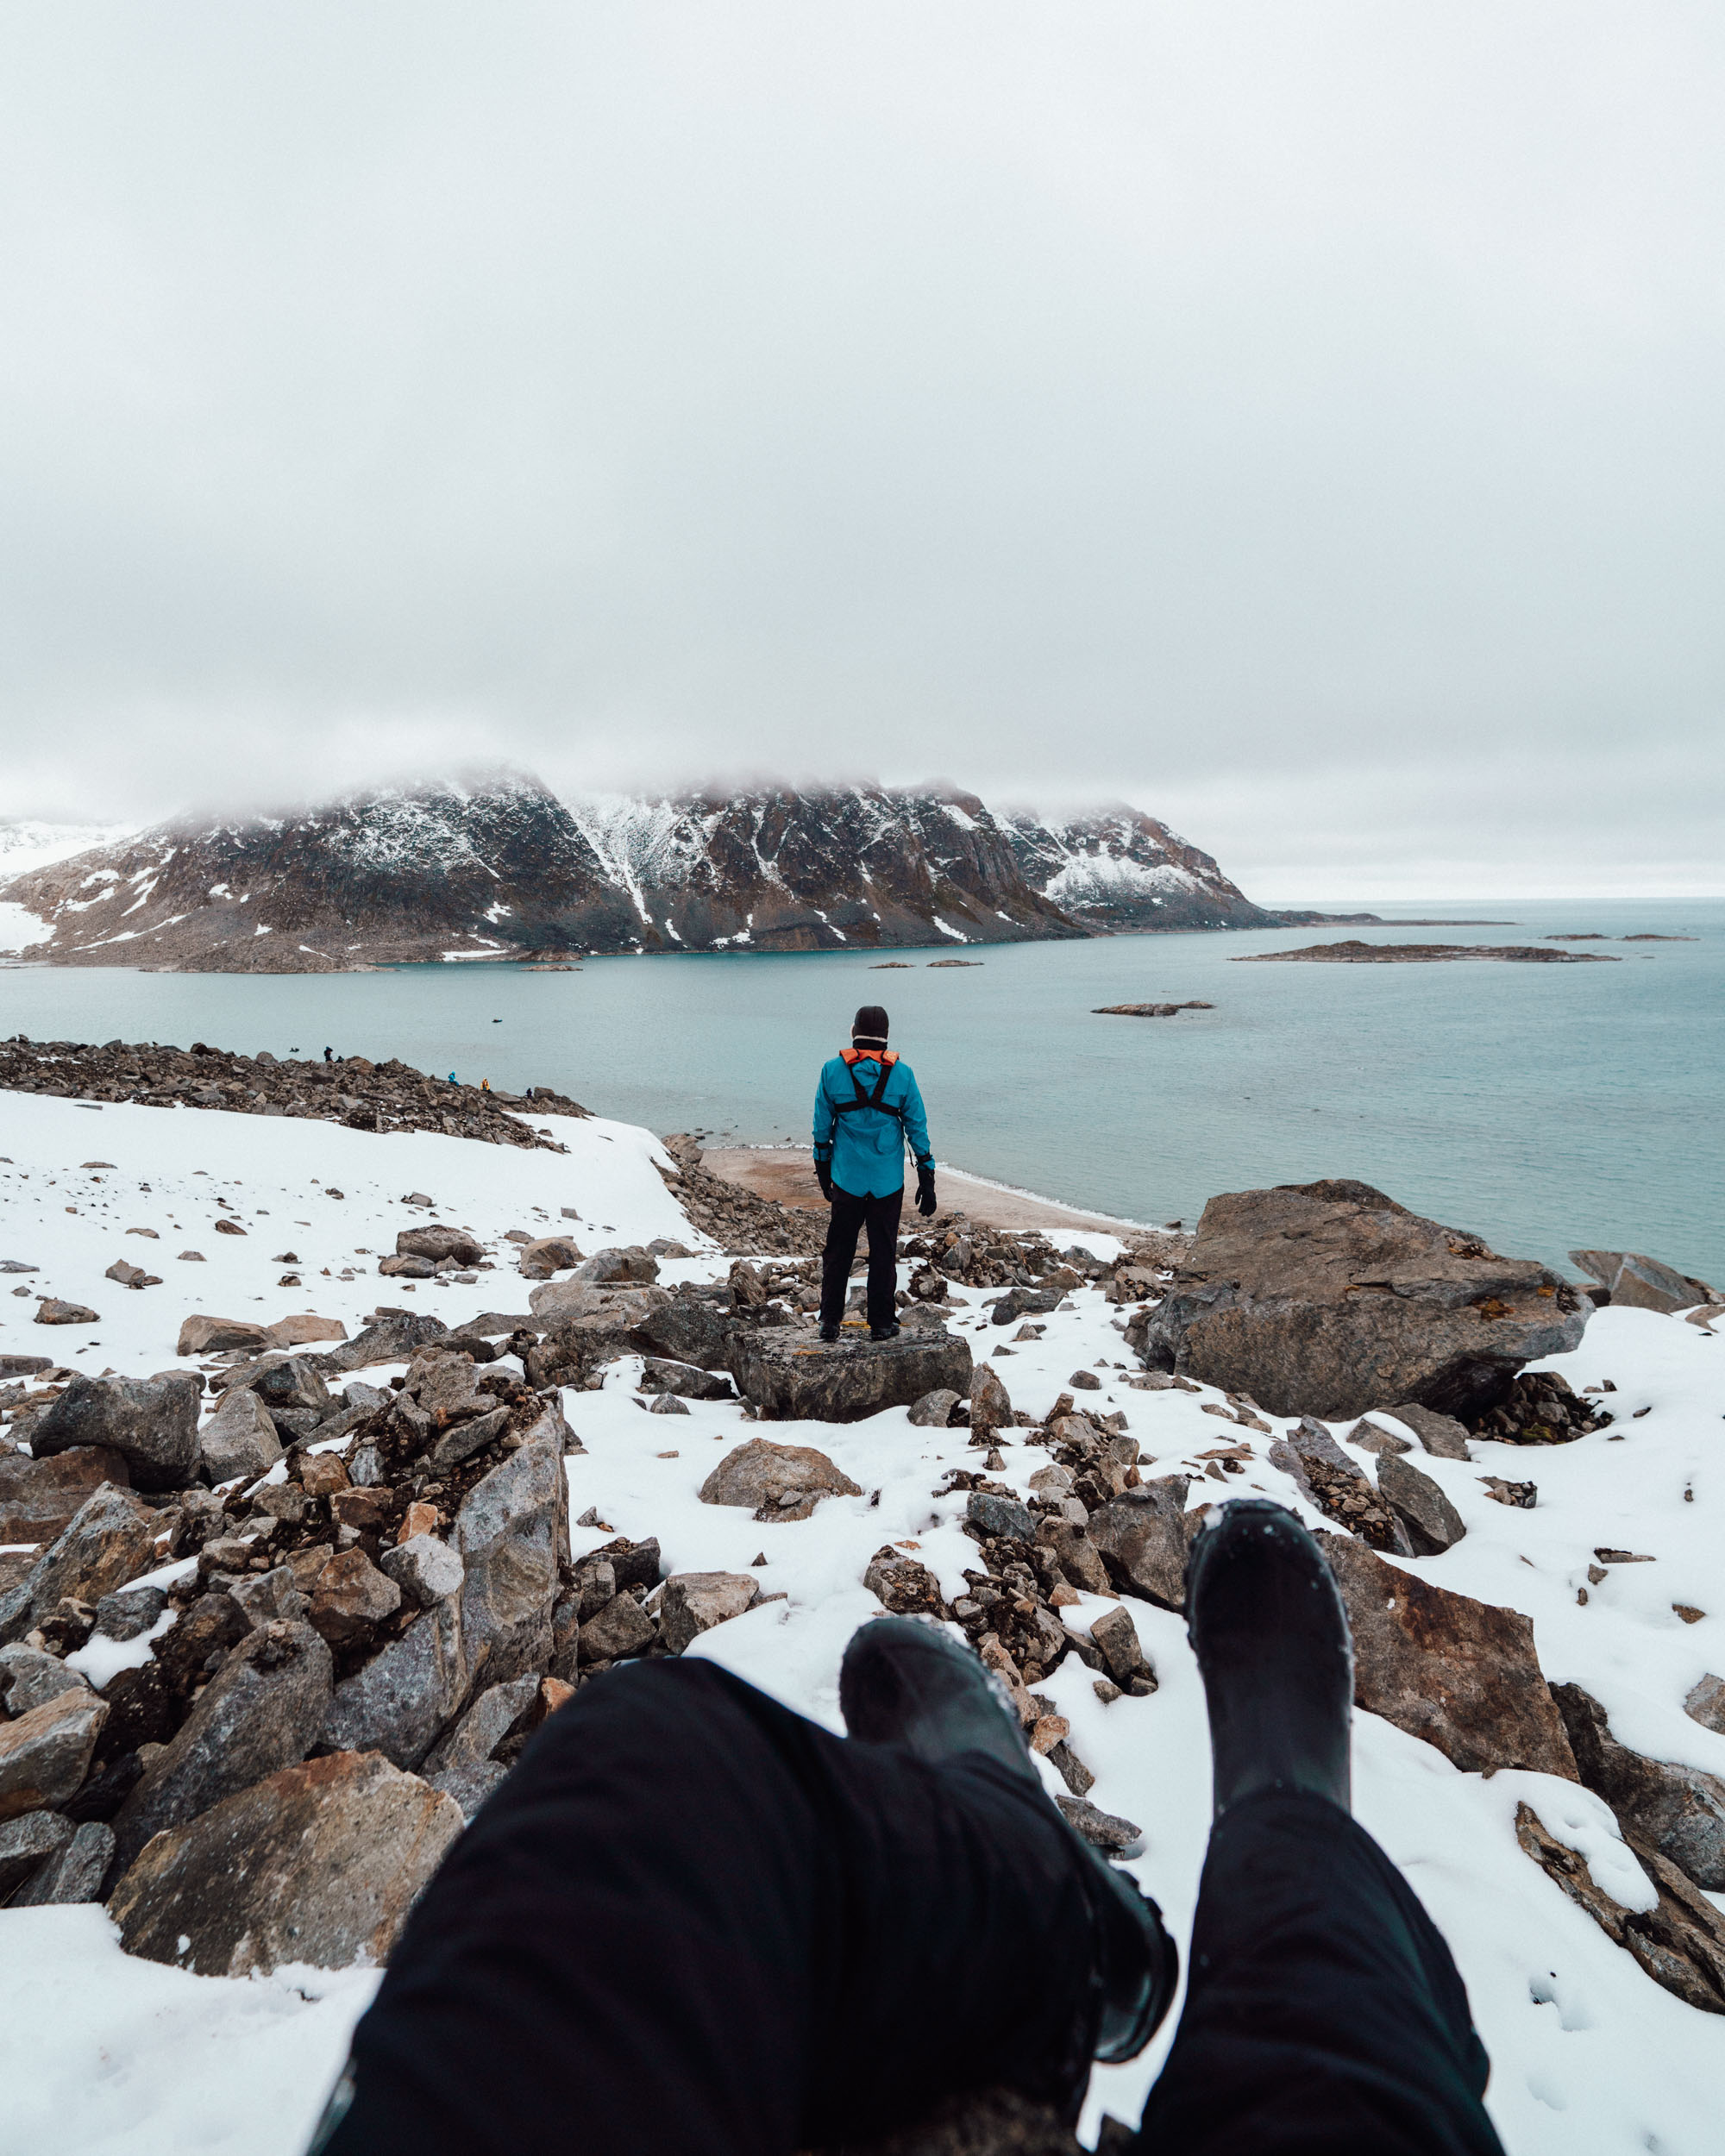 Hamilton Bukta glaciers and a beach in Svalbard Spitsbergen via @finduslost